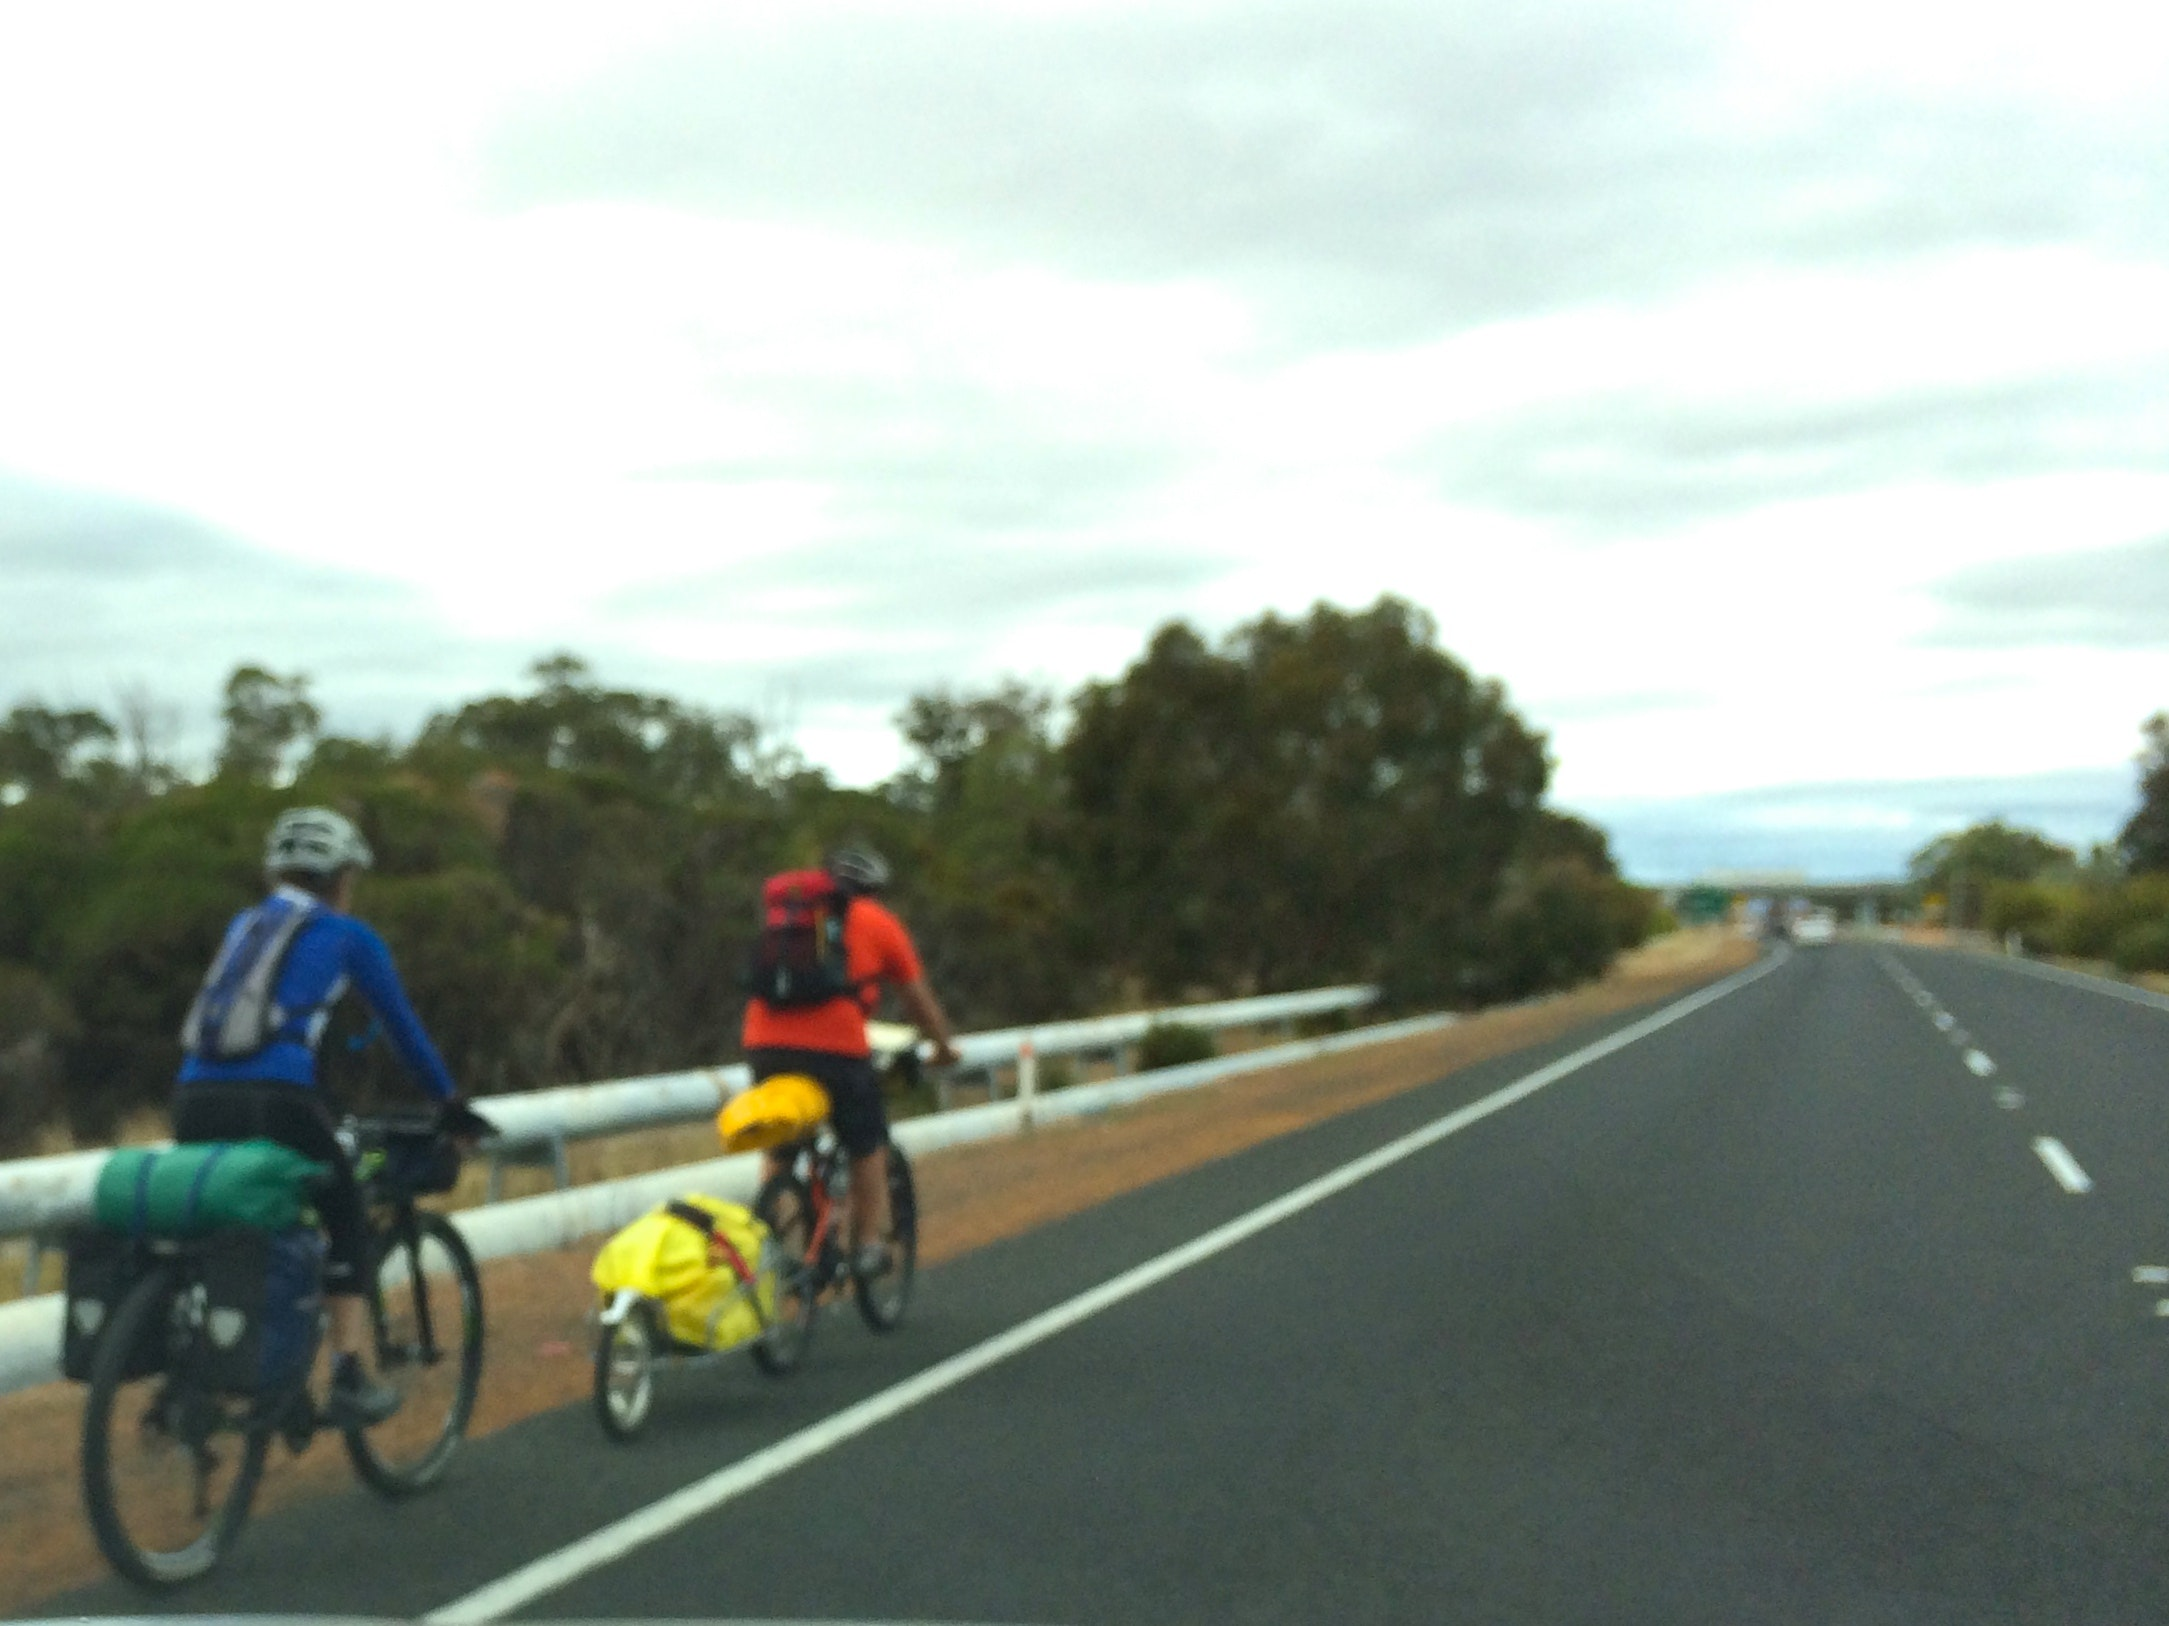 Cyclists on Mandurah to Pinjarra Rd